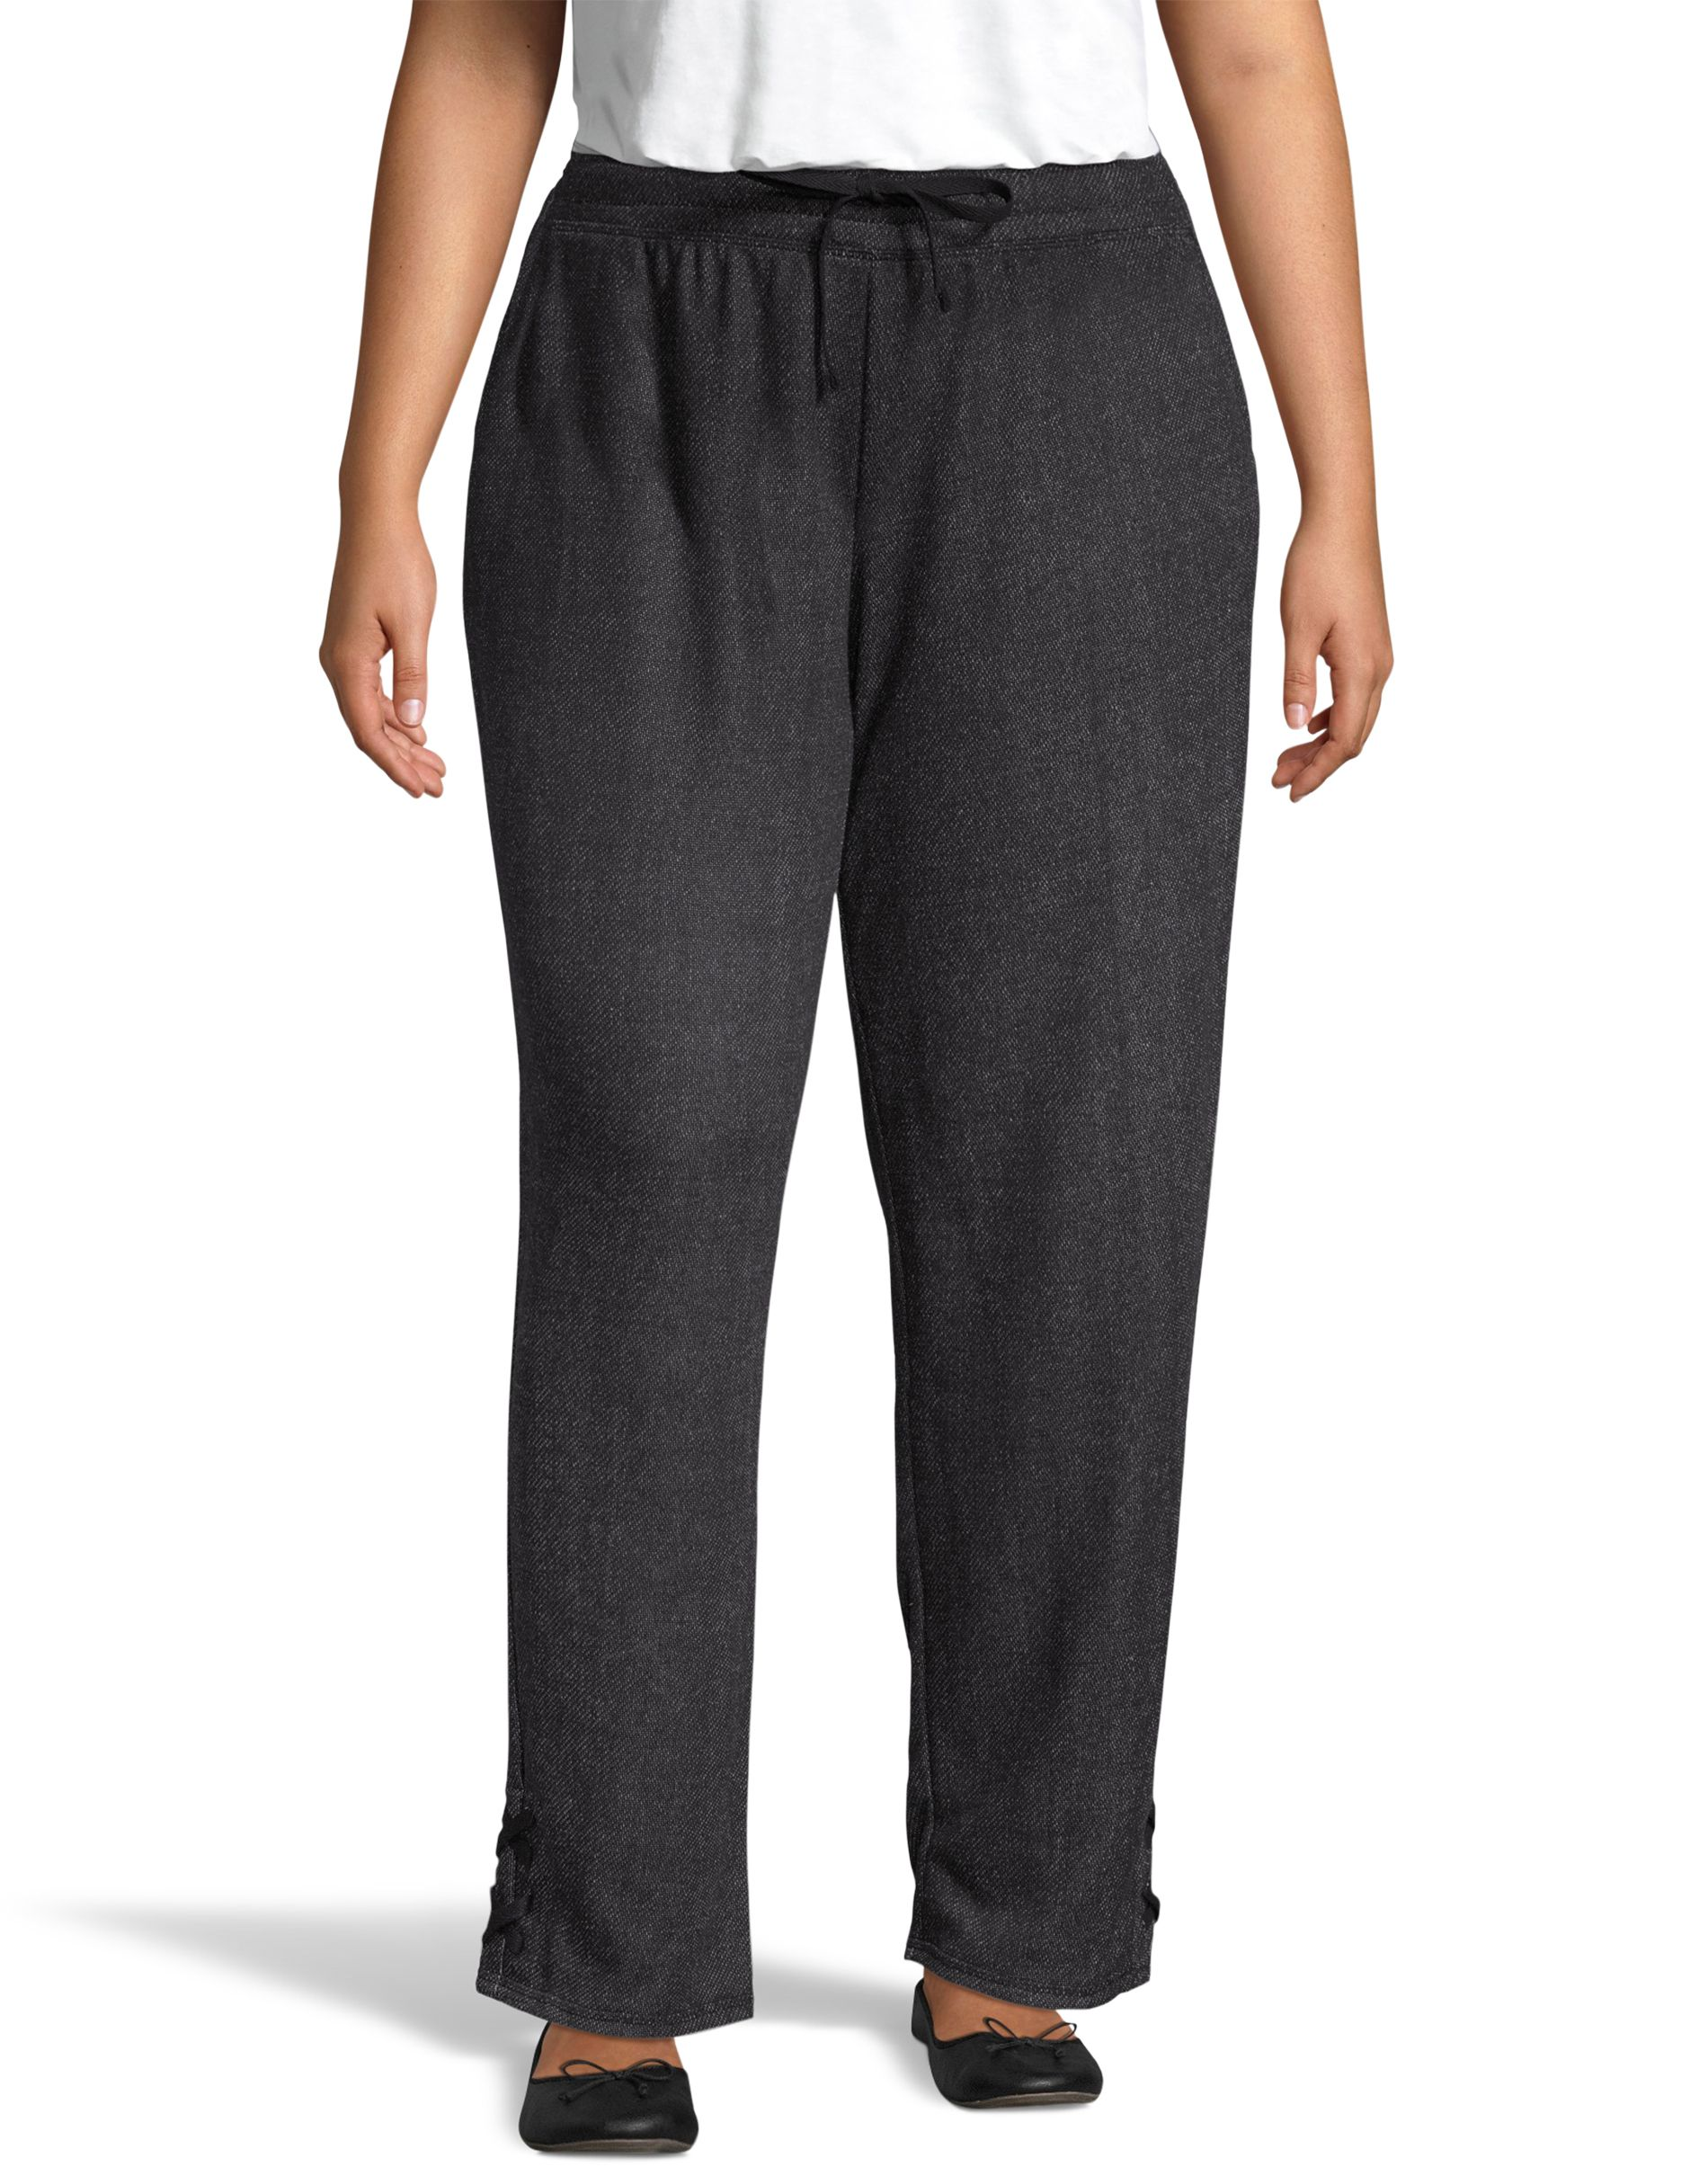 JMS French Terry Lace Up Pant women Just My Size